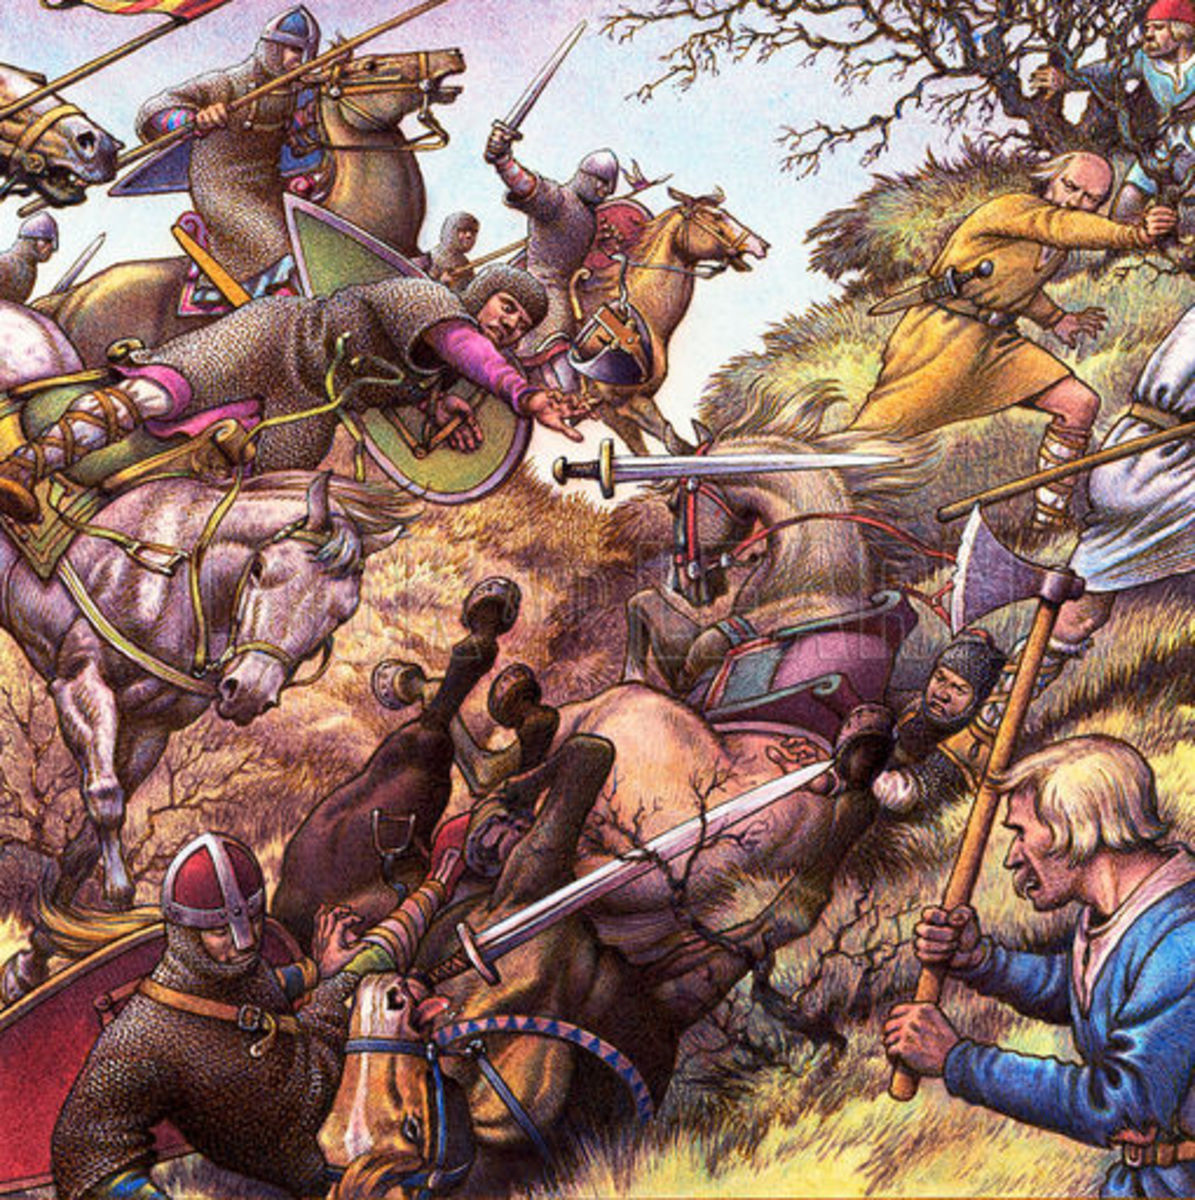 The Norman cavalry could be cornered or ambushed in woodland or confined spaces - one such clash took place at the side of Caldbec Hill where it dipped into a ravine. The ravine went nowhere and the Normans were trapped, losing many to arrows or axes